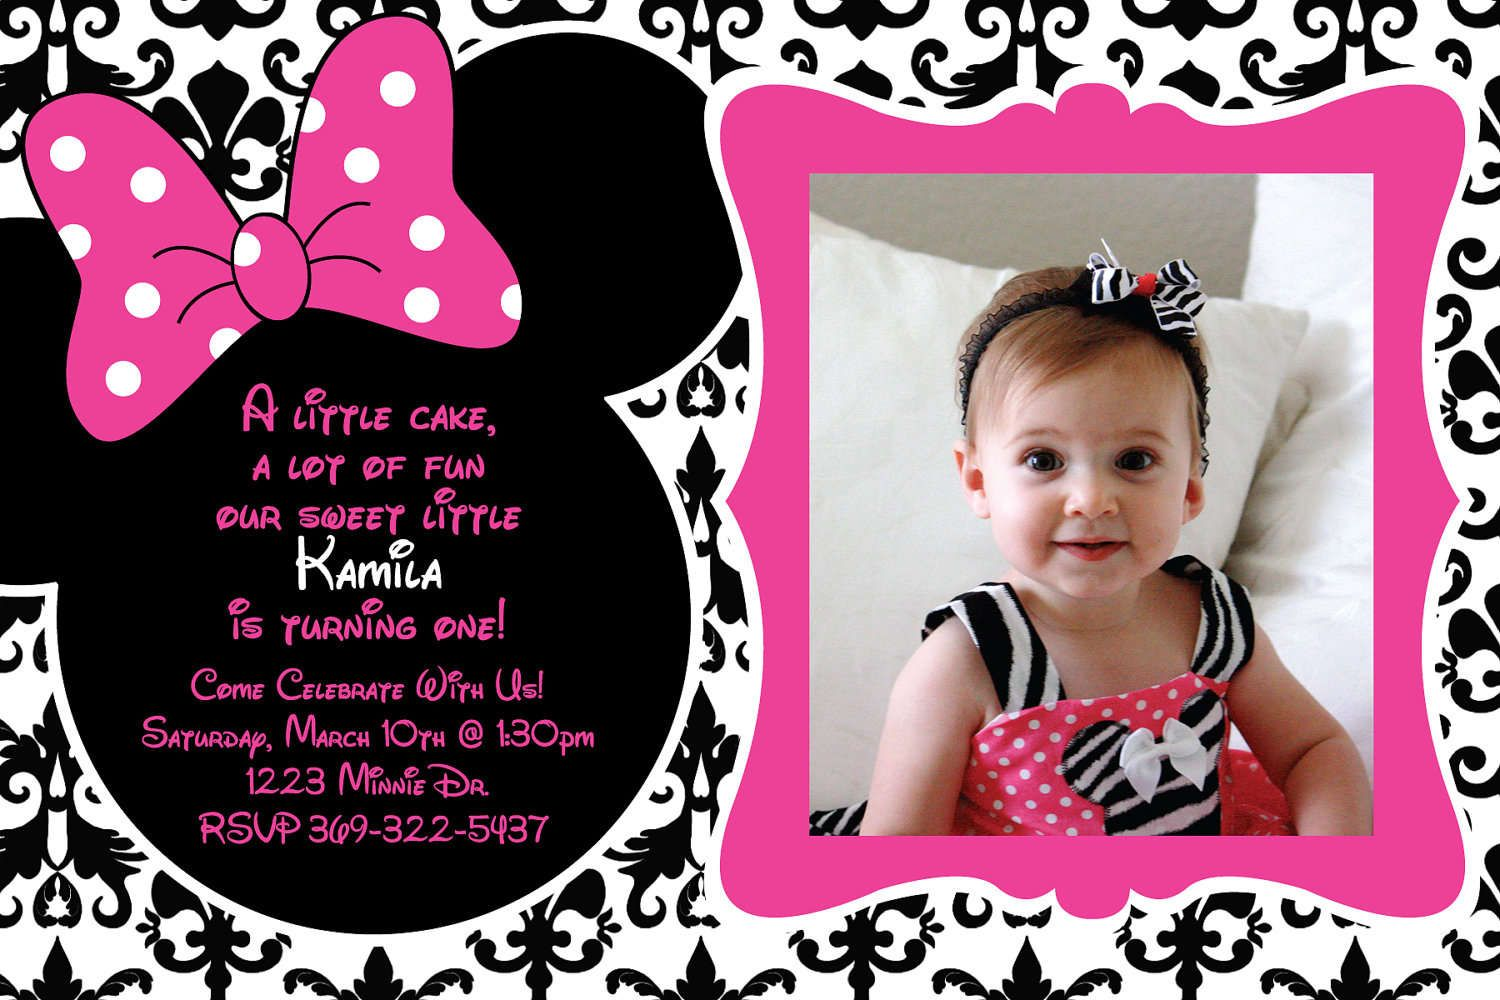 Free birthday invitation templates minnie mouse ariannas birthday free birthday invitation templates minnie mouse filmwisefo Choice Image